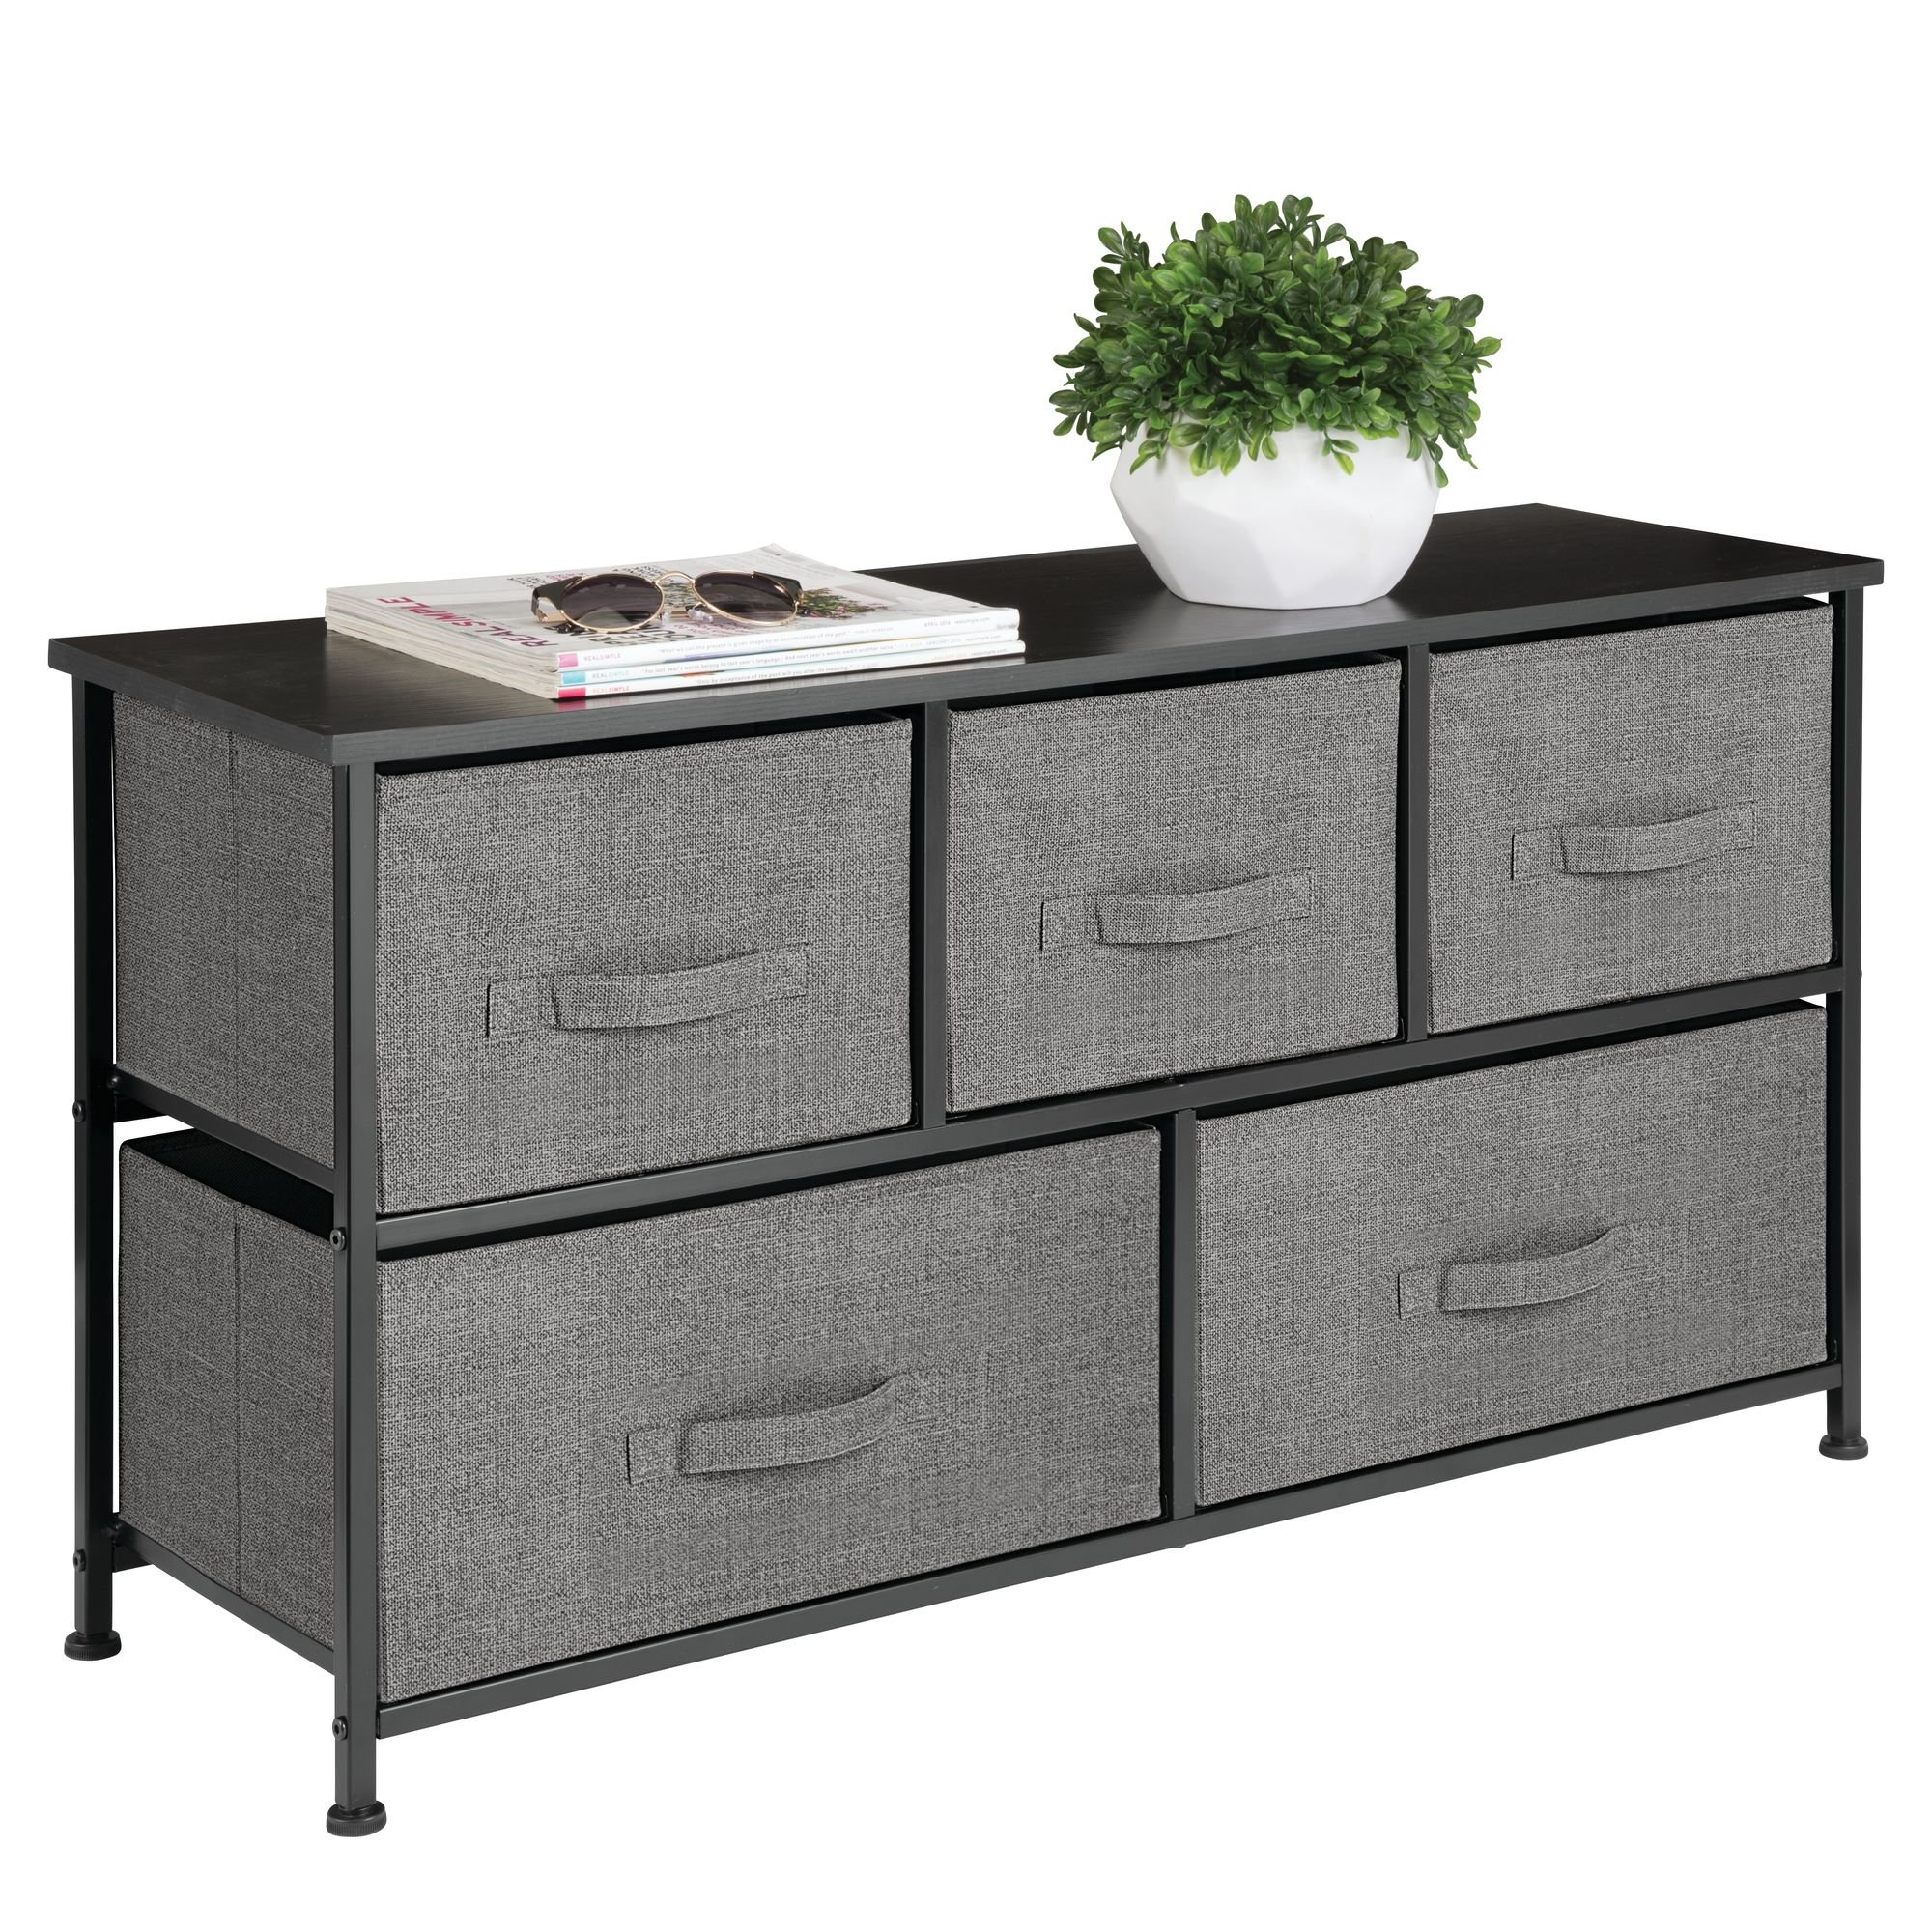 mDesign Extra Wide Dresser Storage Tower - Sturdy Steel Frame, Wood Top, Easy Pull Fabric Bins - Organizer Unit for Bedroom, Hallway, Entryway, Closet - Textured Print - 5 Drawers, Charcoal Gray/Black by mDesign